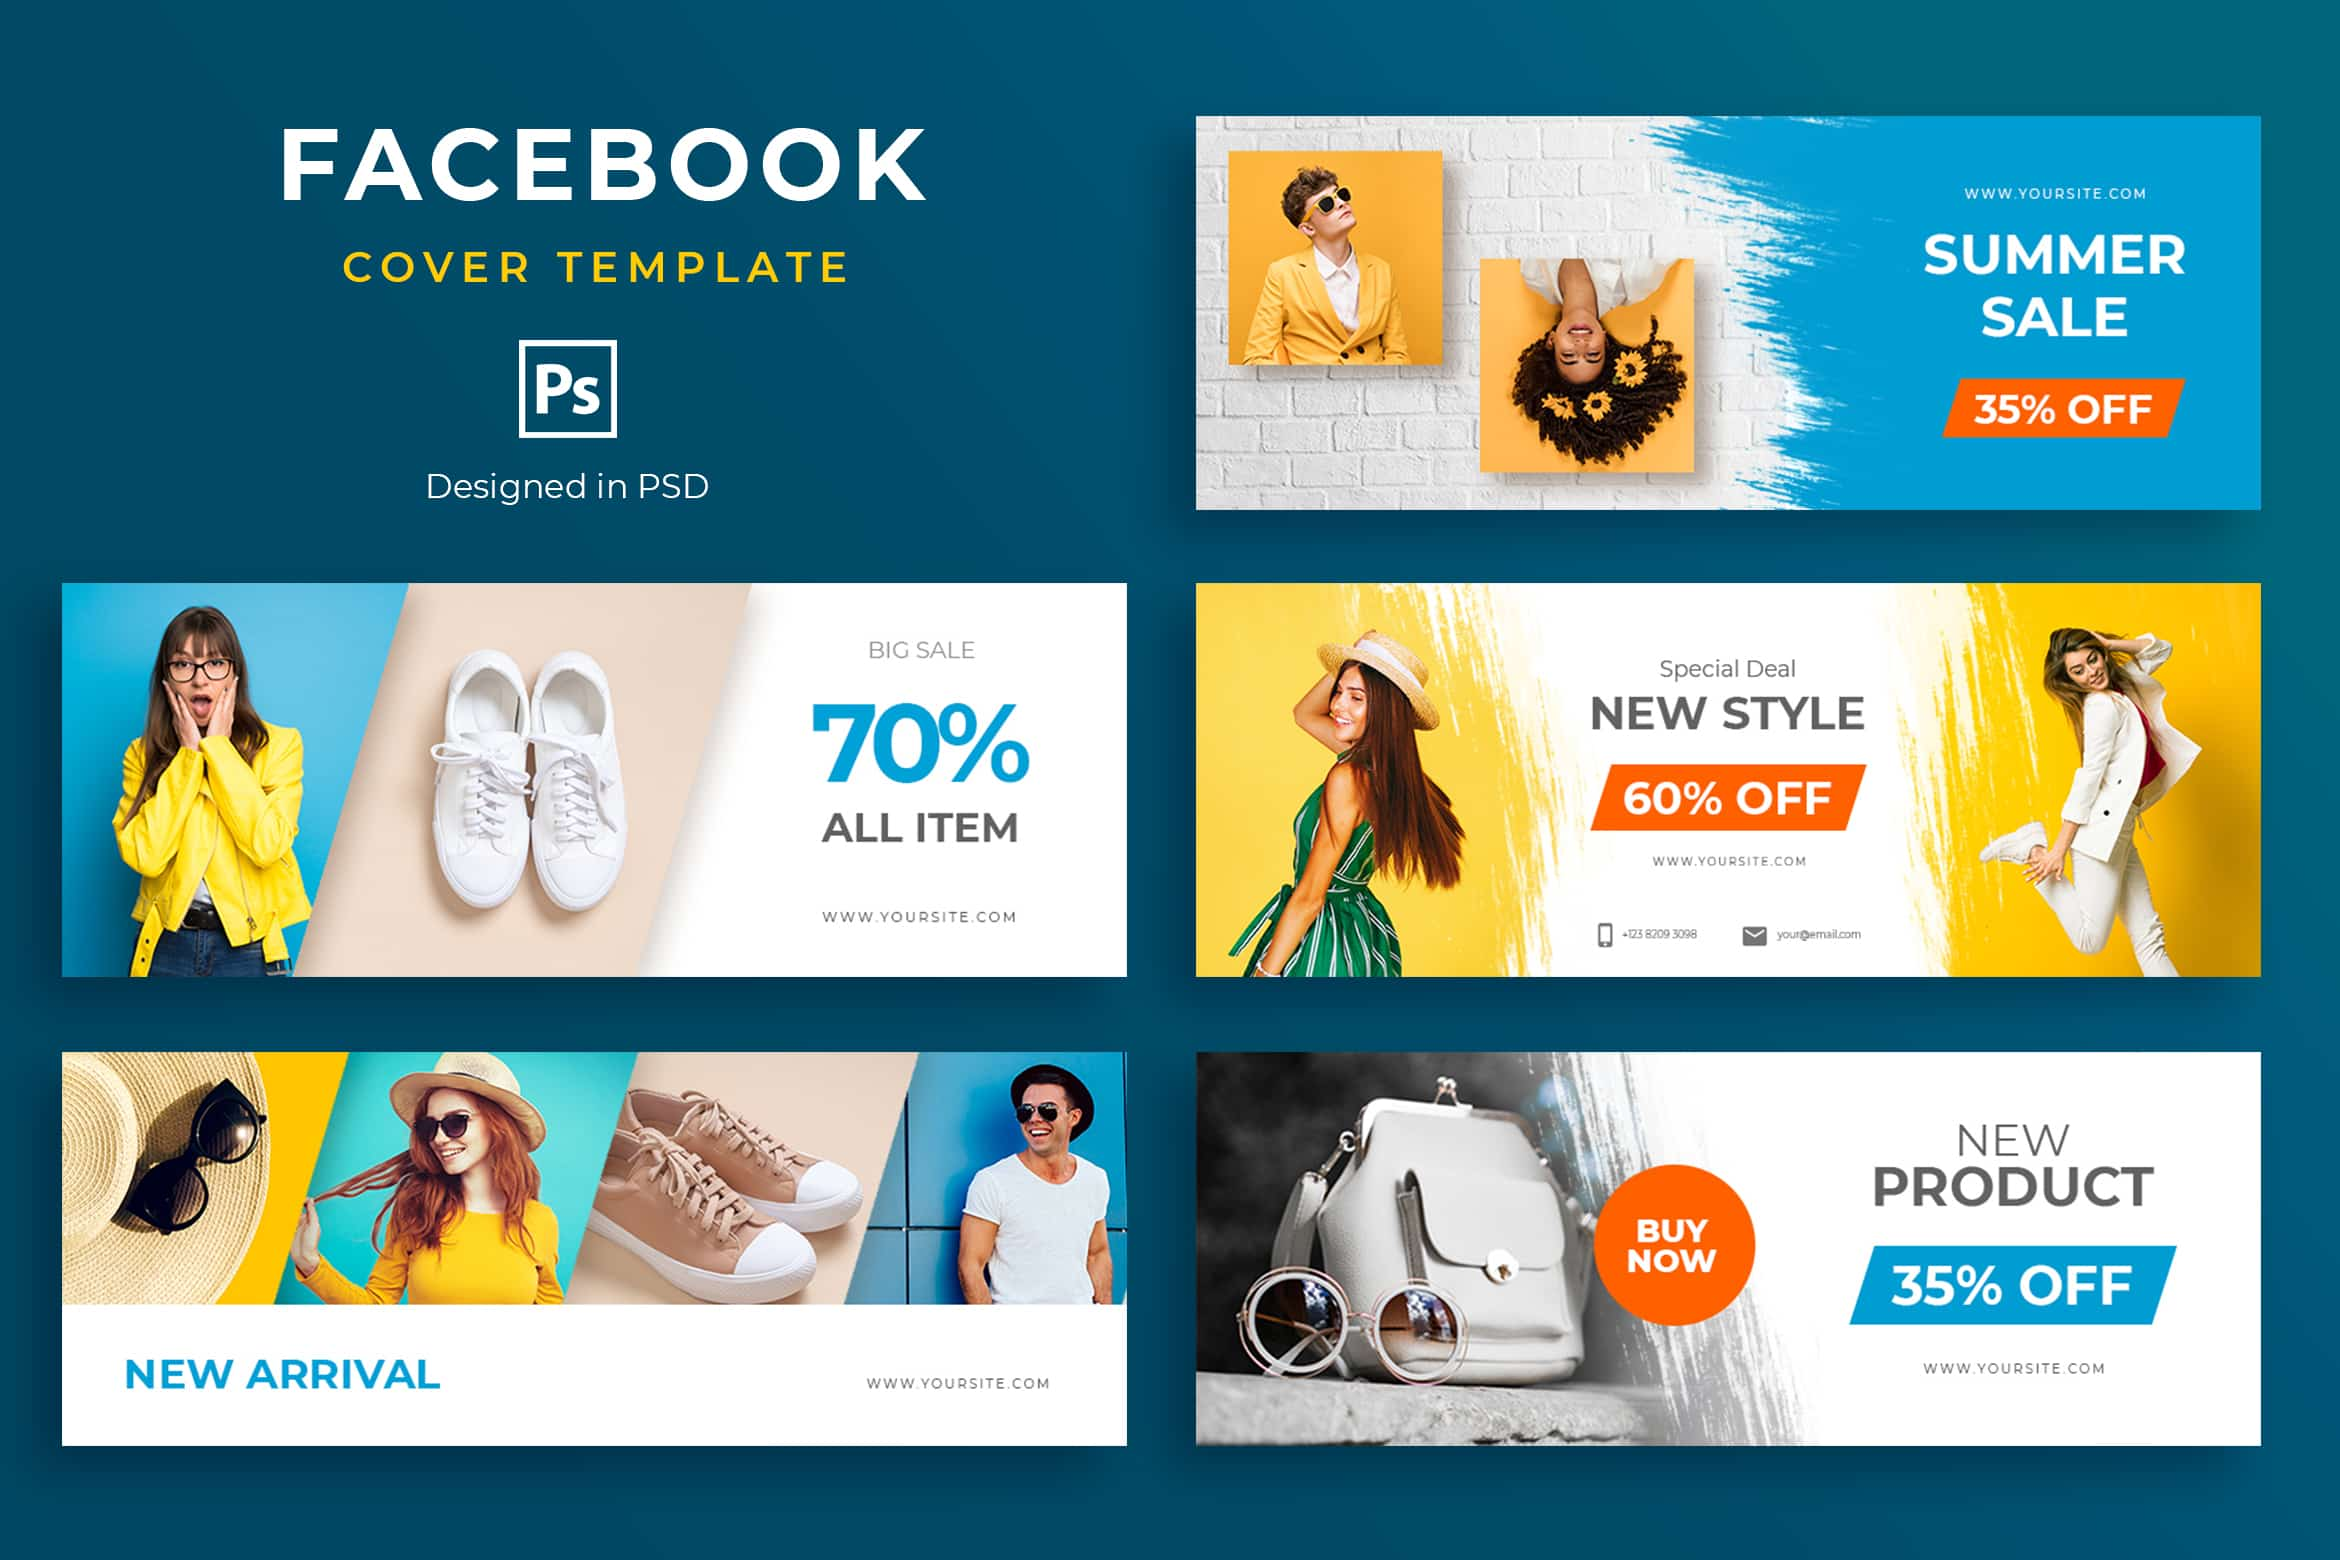 Facebook Cover - Summer Sale Discount